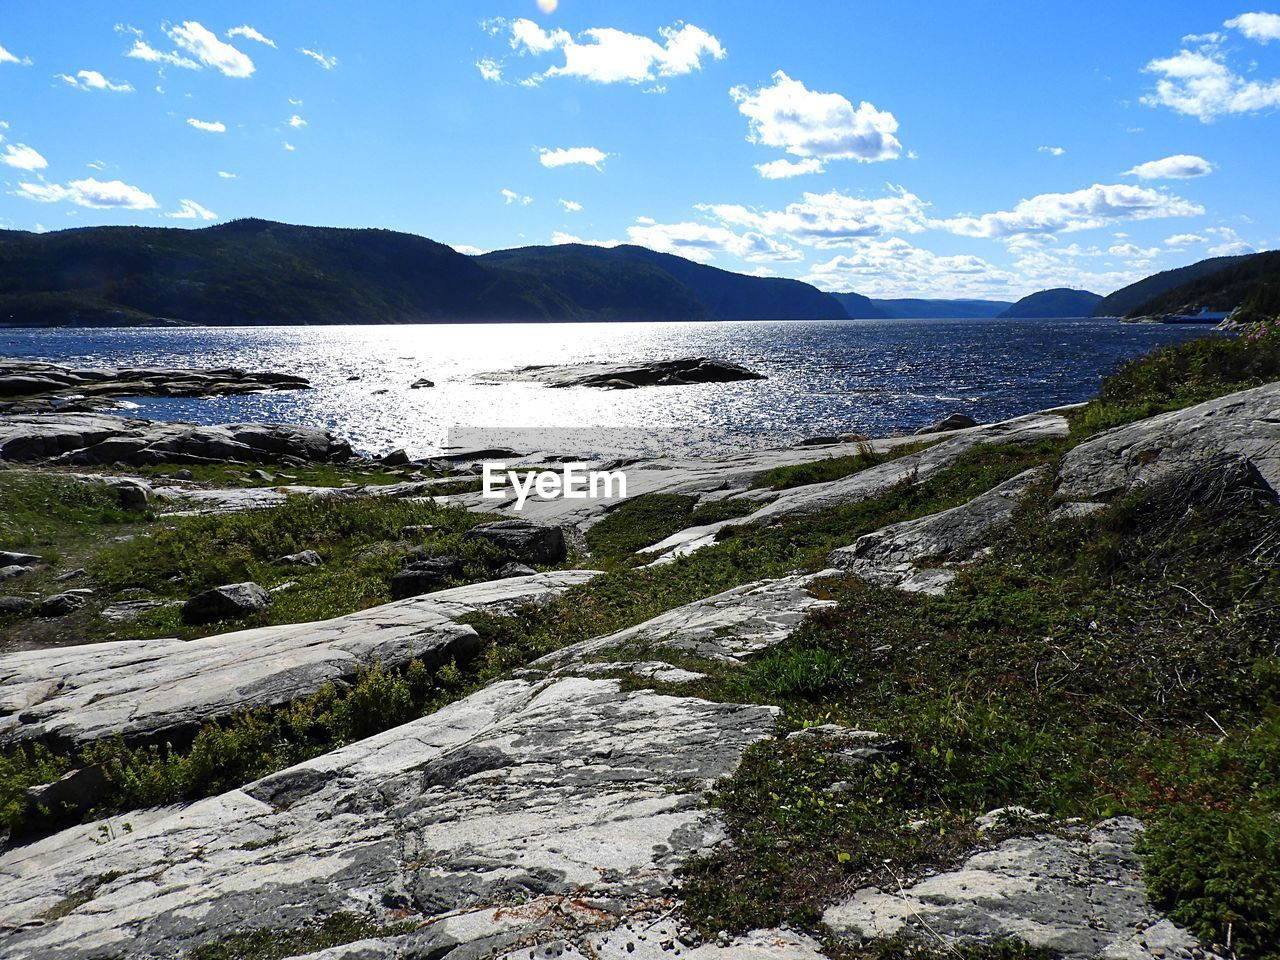 sky, water, beauty in nature, scenics - nature, mountain, cloud - sky, tranquility, tranquil scene, sea, nature, no people, rock, day, land, non-urban scene, solid, rock - object, beach, idyllic, outdoors, flowing water, rocky coastline